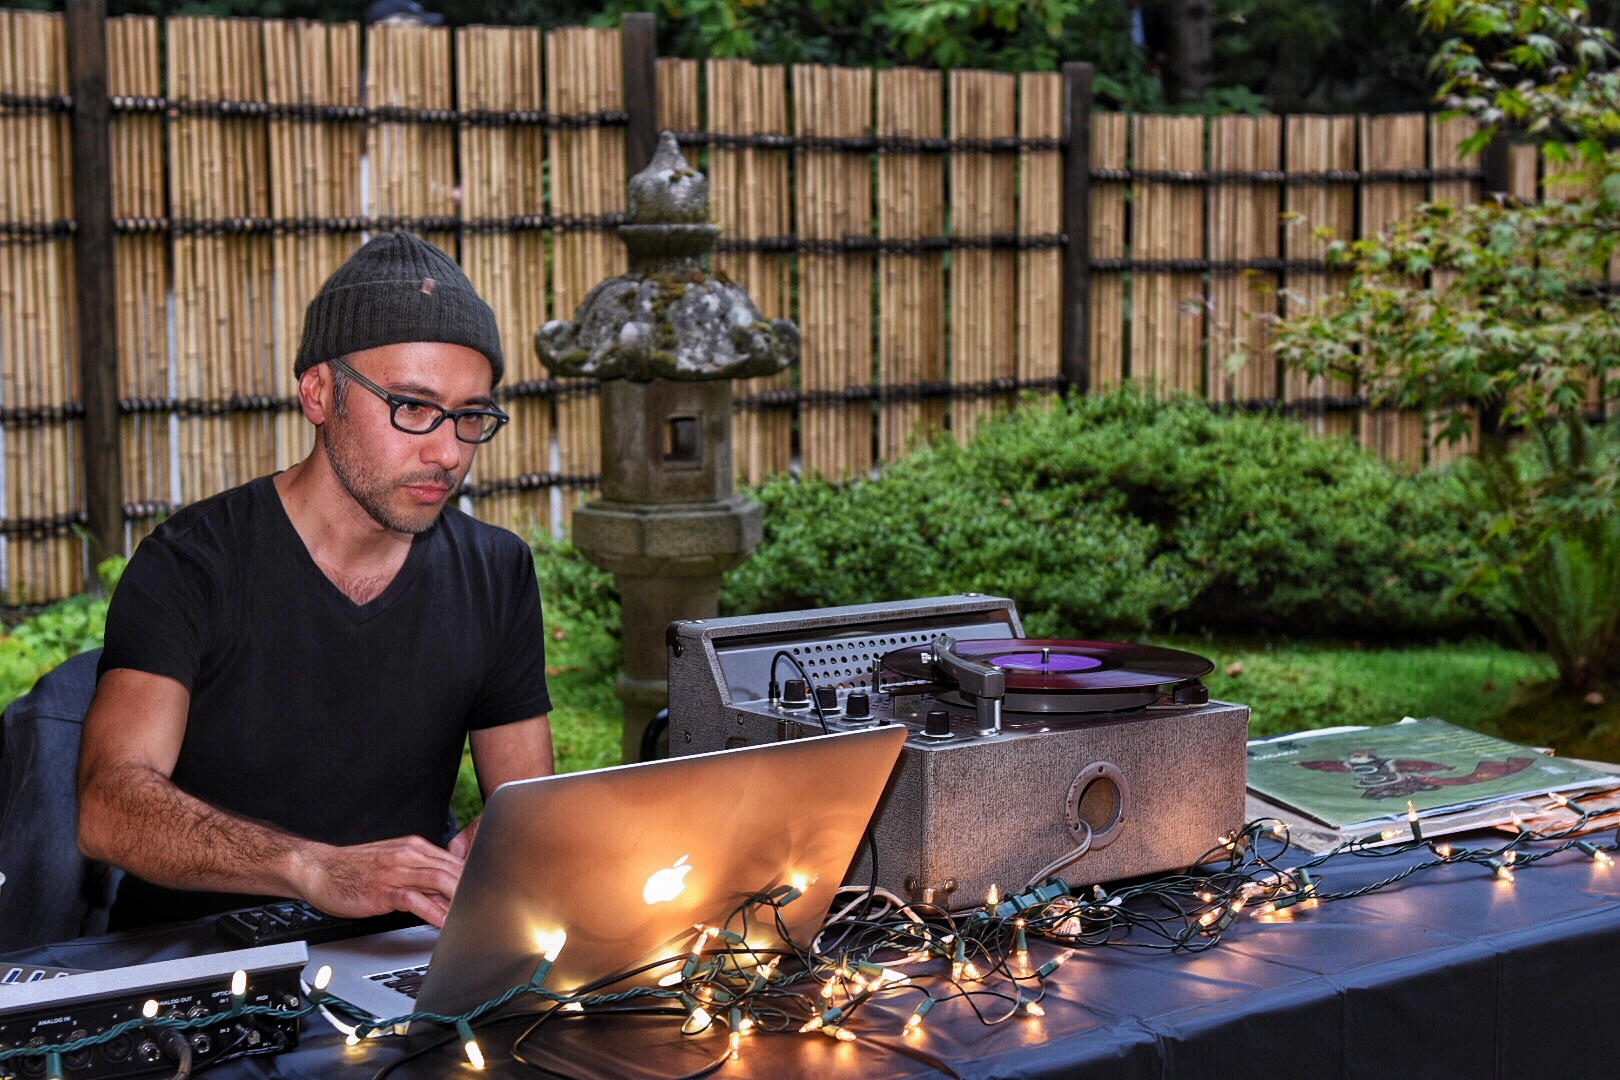 Sound installations by Paul Kikuchi were placed throughout the garden. Kikuchi also played a collection of historic 78RPM records donated to JCCCW over the years. (Photo by Aurora Santiago)